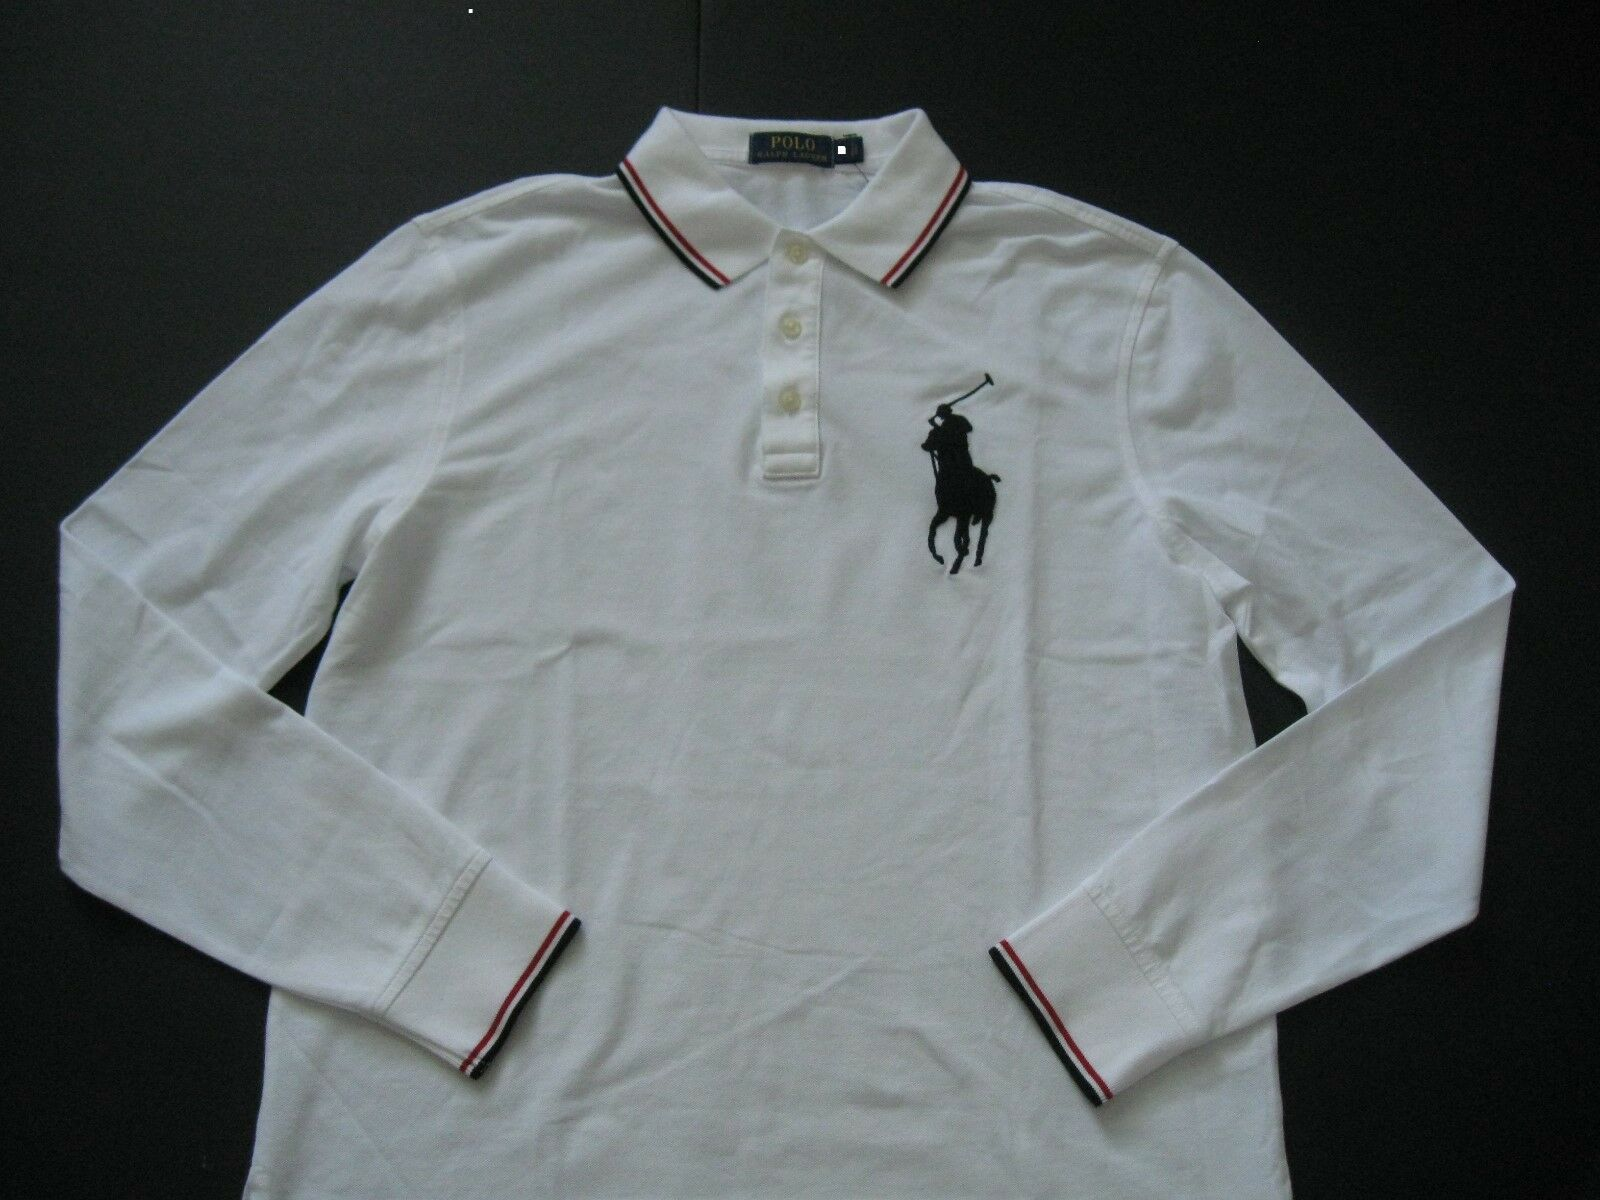 Polo RALPH LAUREN Men's White Relaxed-Fit Long-Sleeved Big Pony Mesh Polo XL